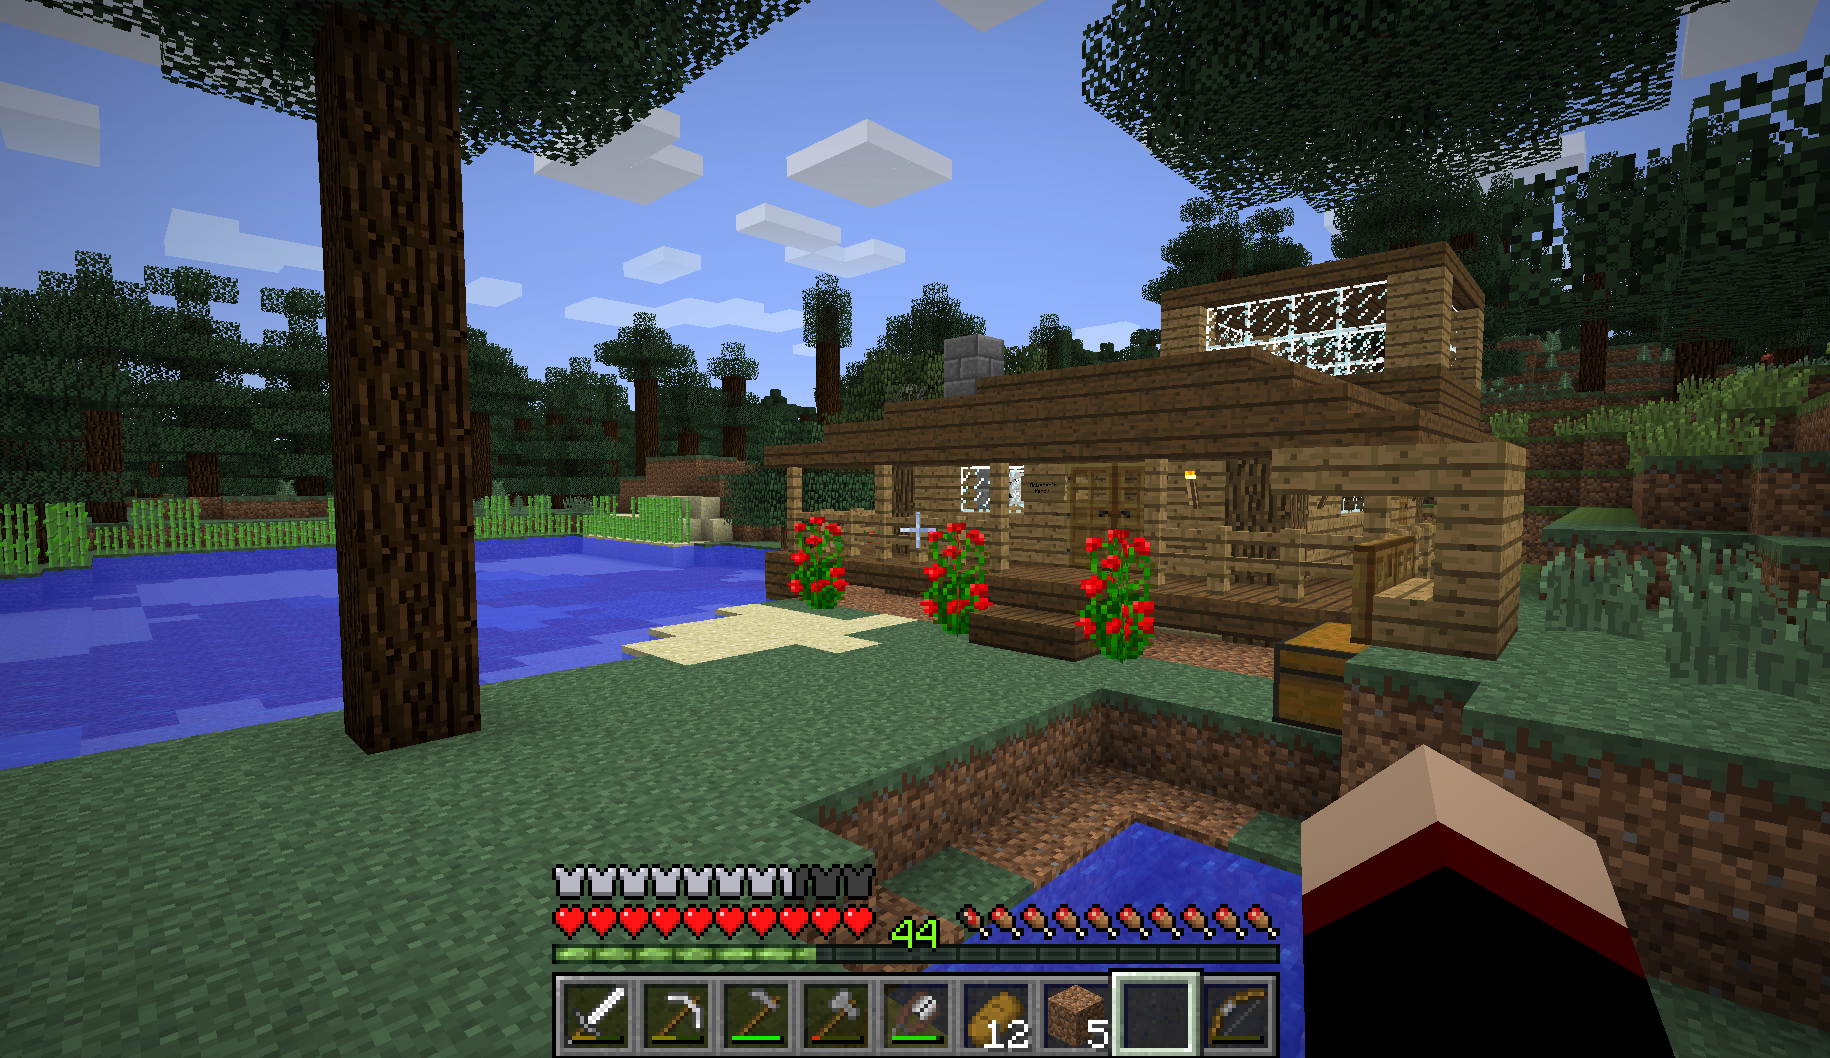 Belle Maison Minecraft : Plus belle maison sur minecraft l impression d